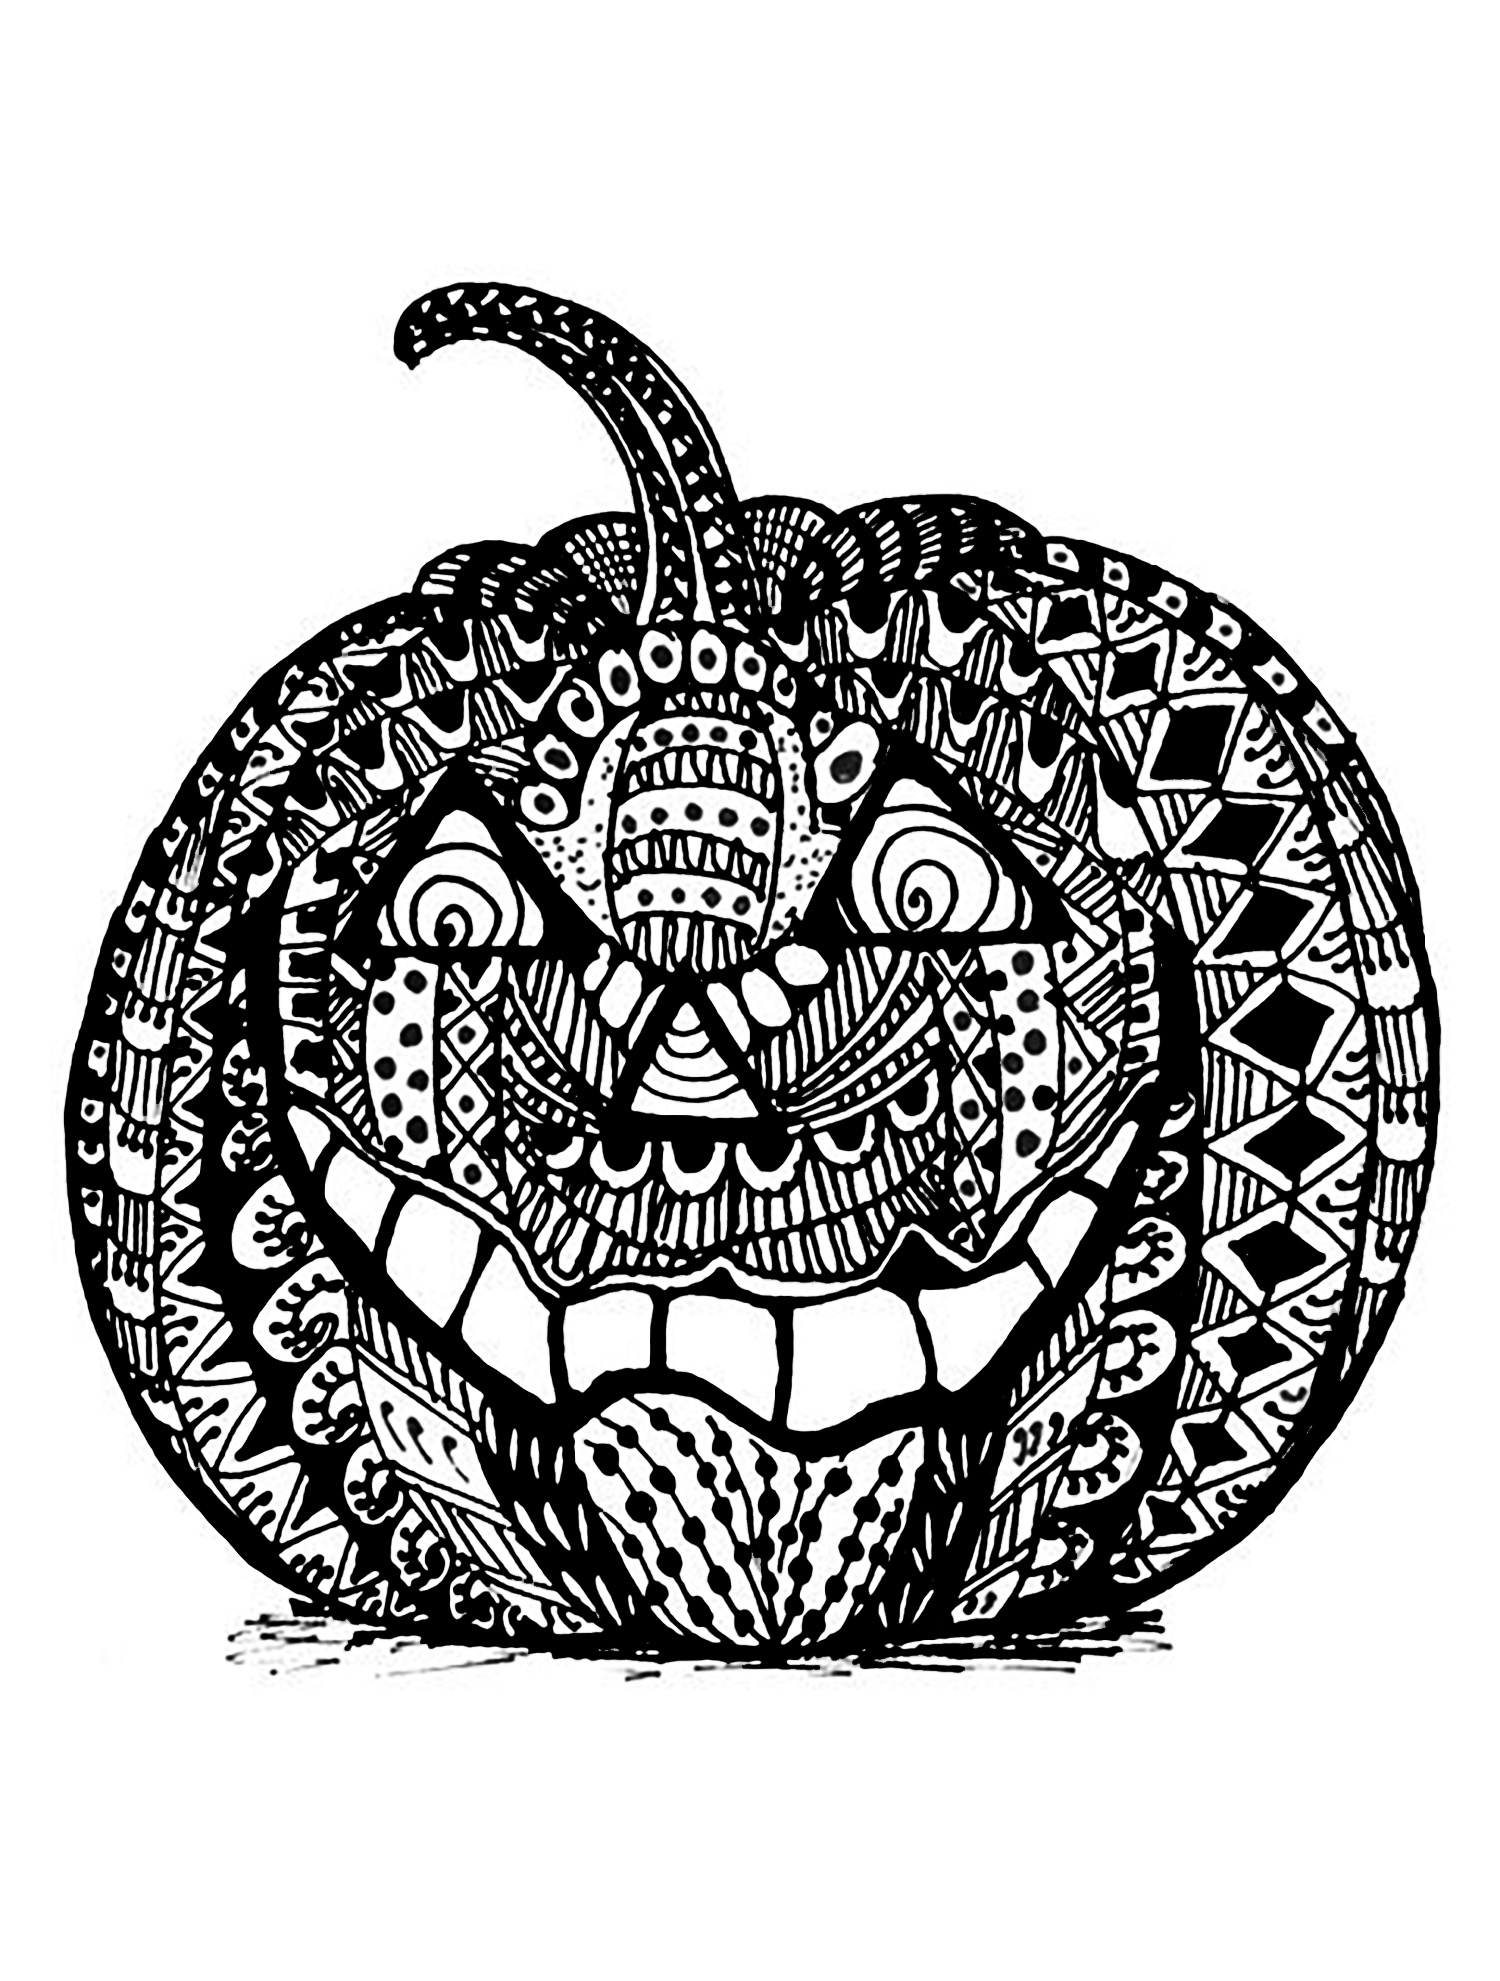 image=coloriages halloween coloriage halloween citrouille plexe zentangle 1